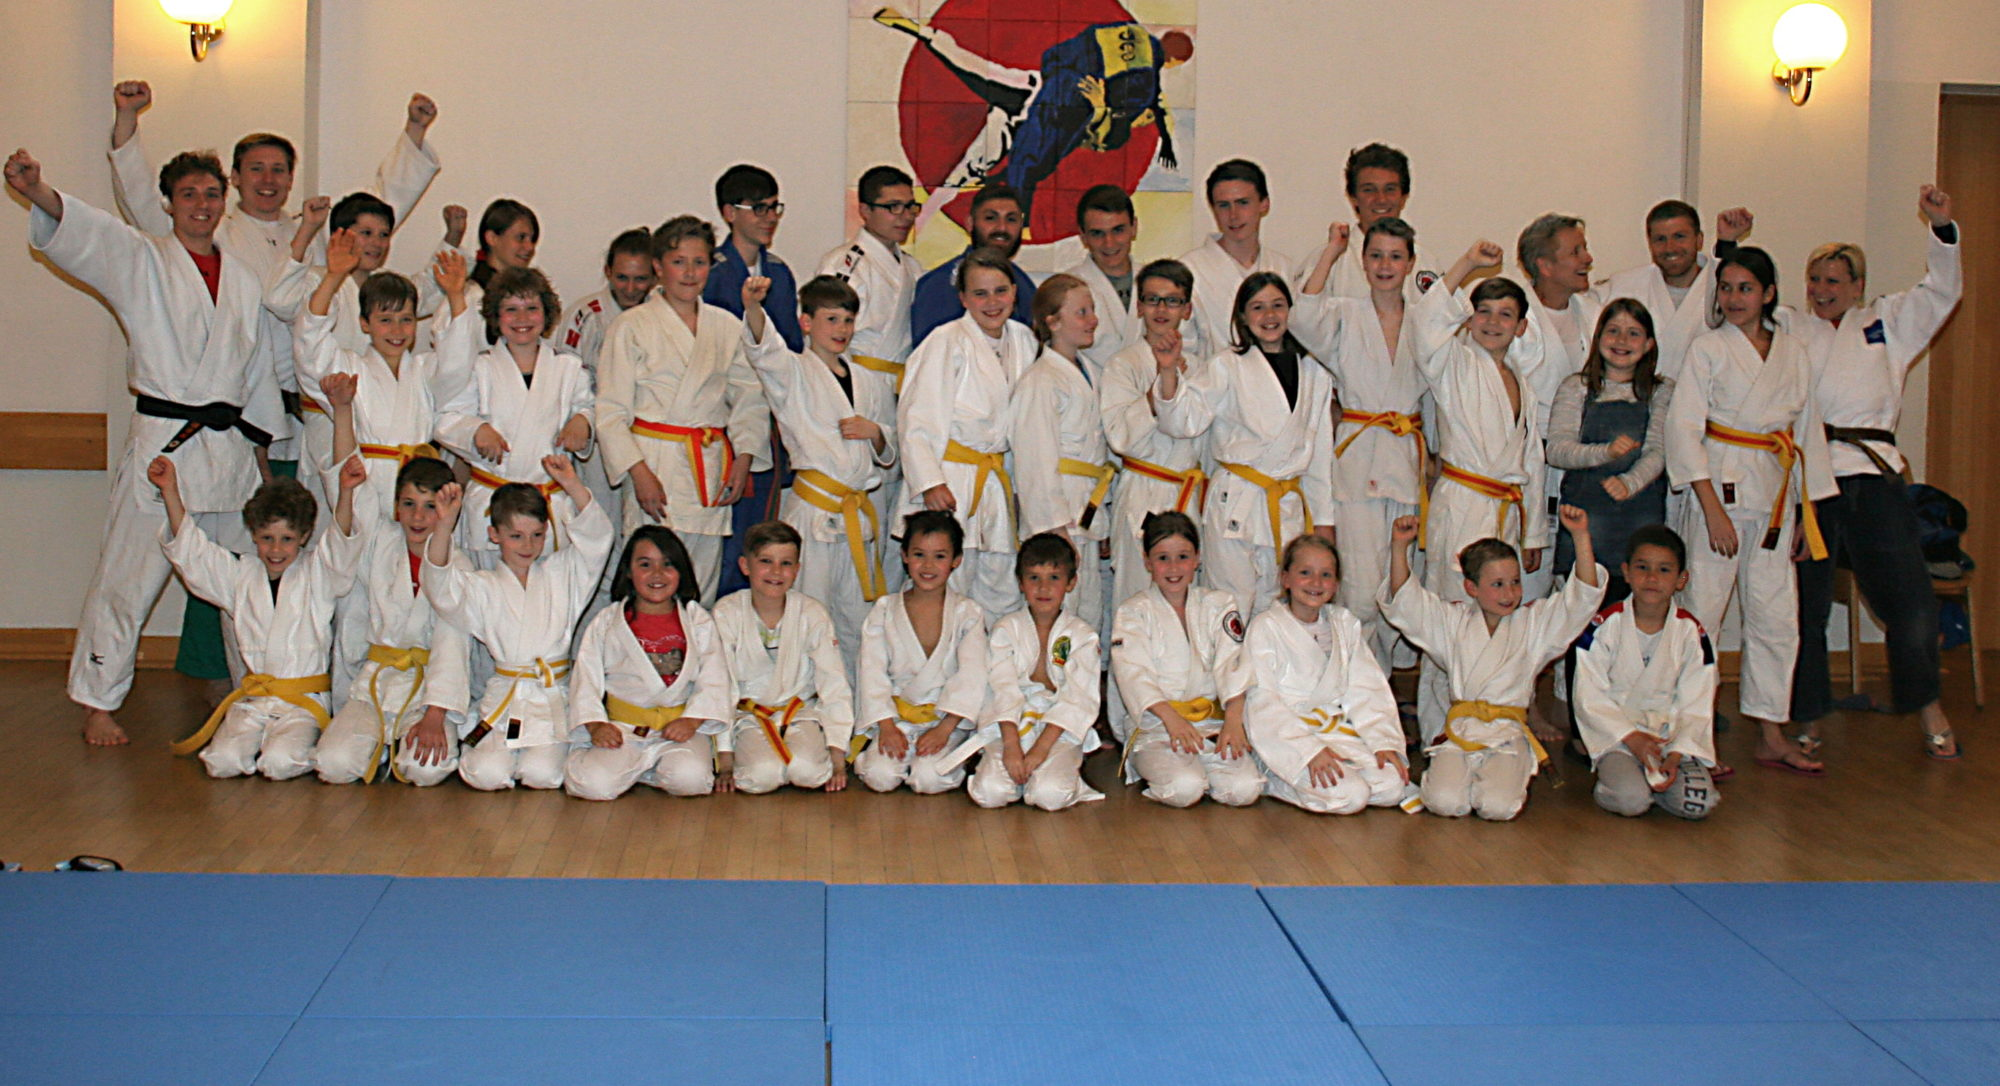 Judo Club Obernburg